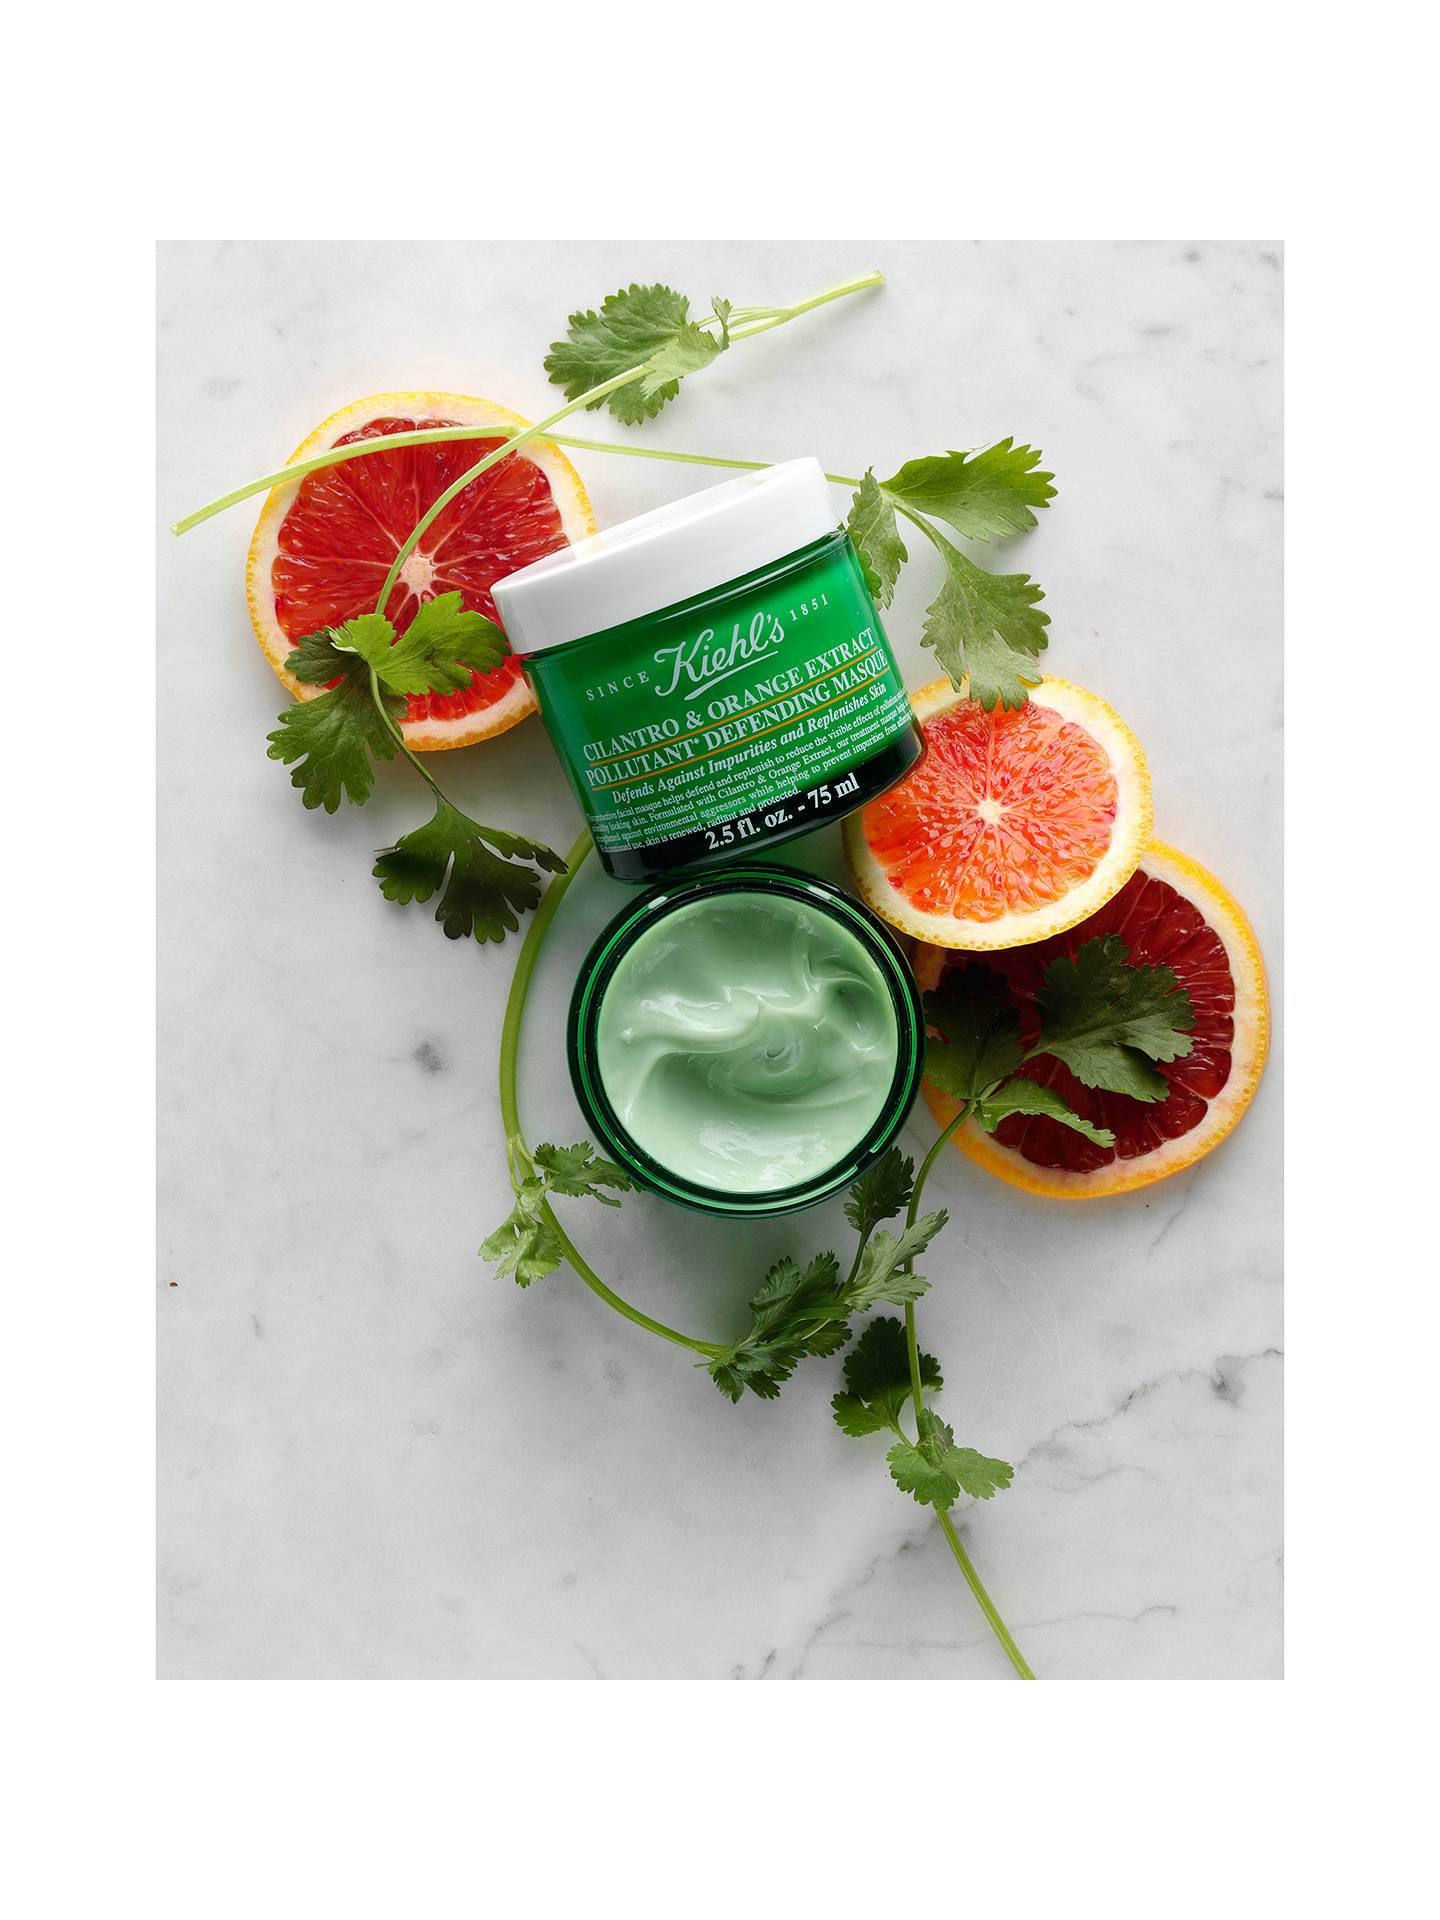 BuyKiehl's Cilantro & Orange Extract Pollutant Defending Masque, 100ml Online at johnlewis.com